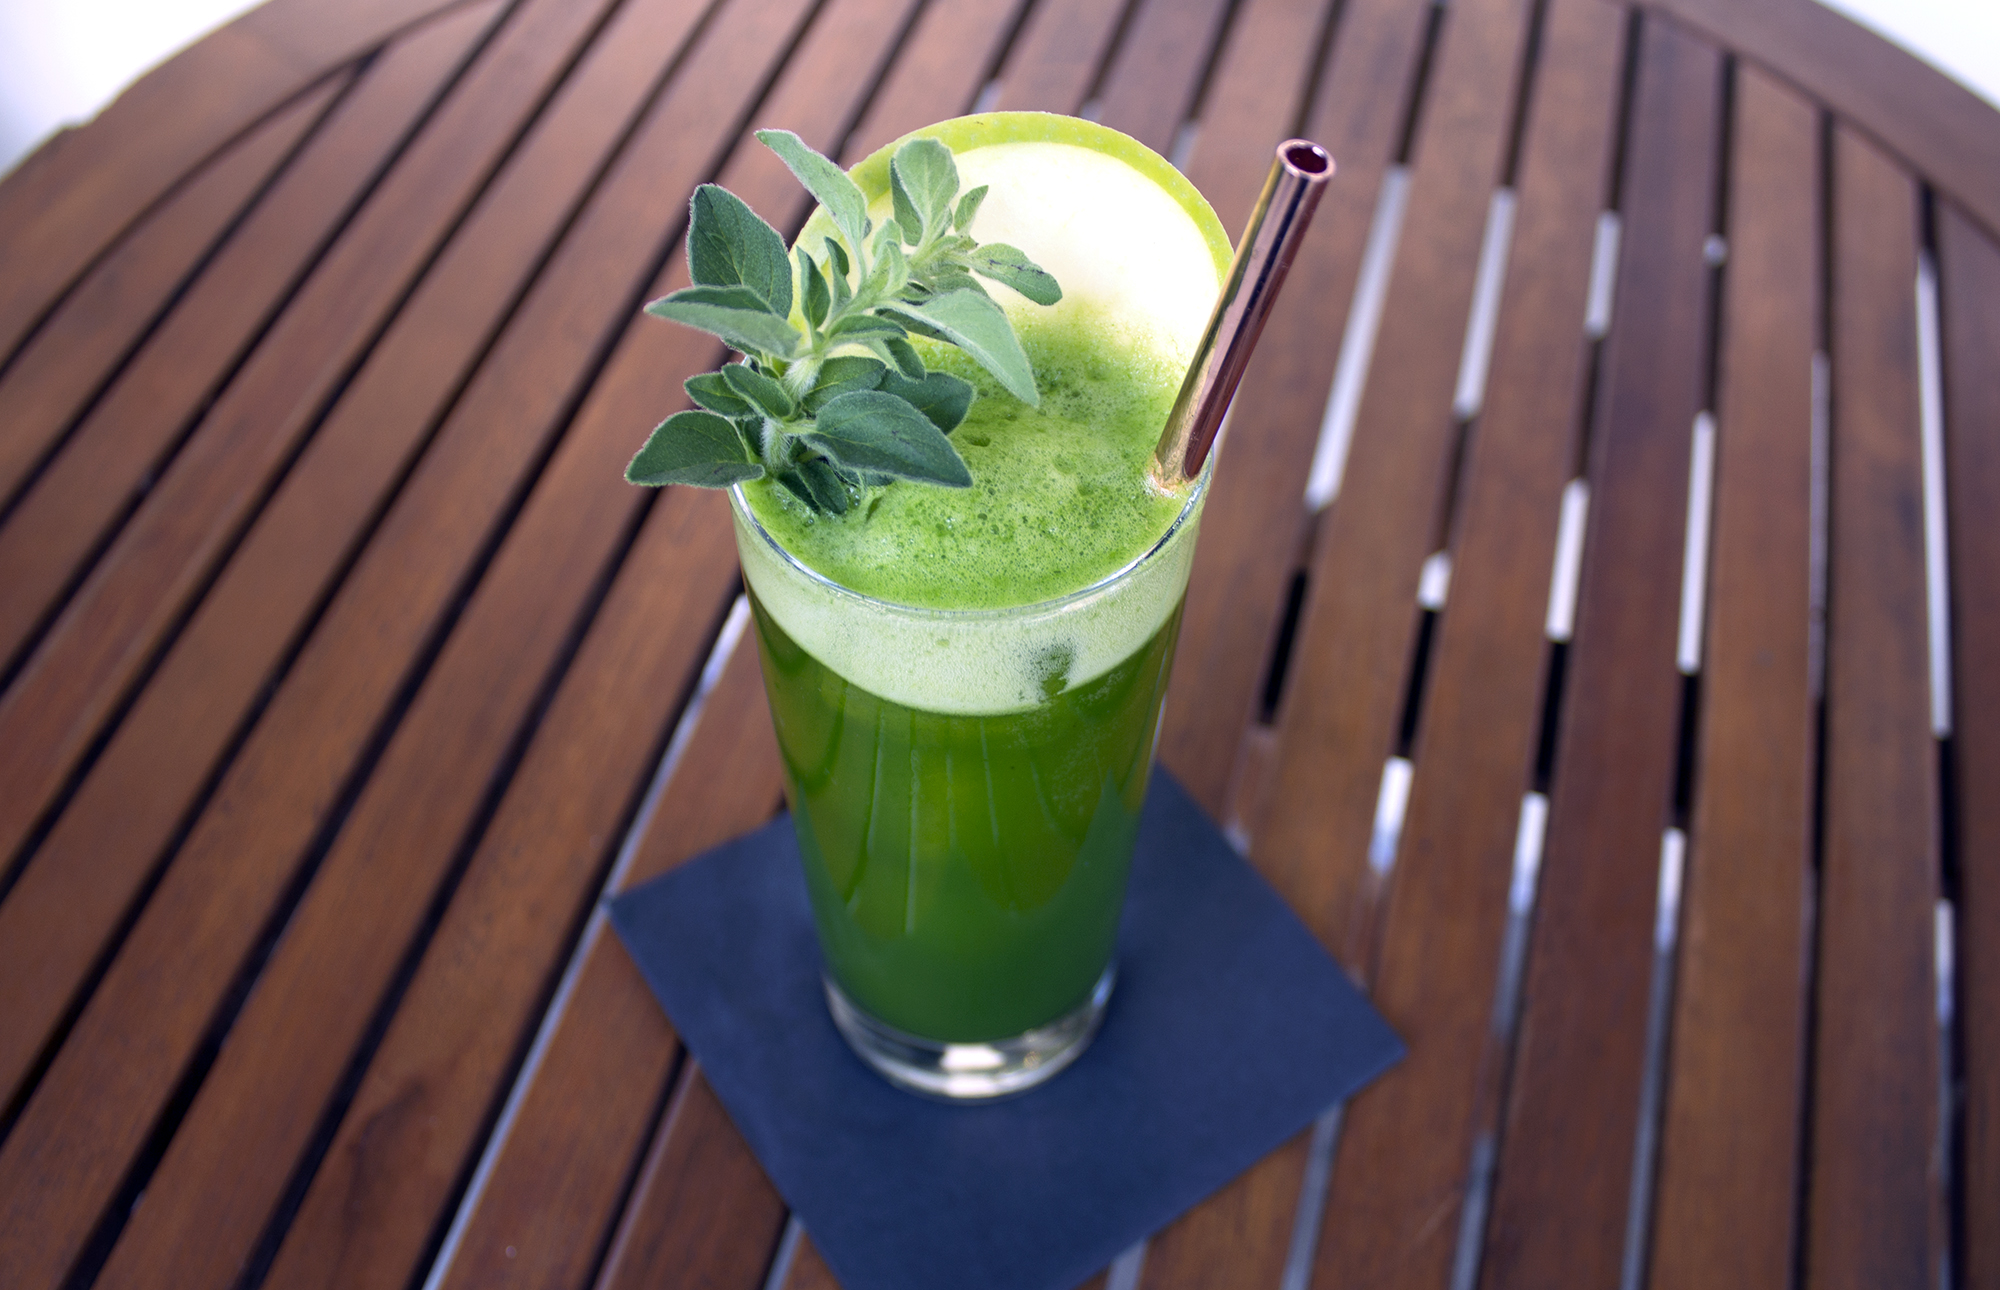 Green is the new gold the raw facts on how juicing is taking over elyxir1 malvernweather Gallery